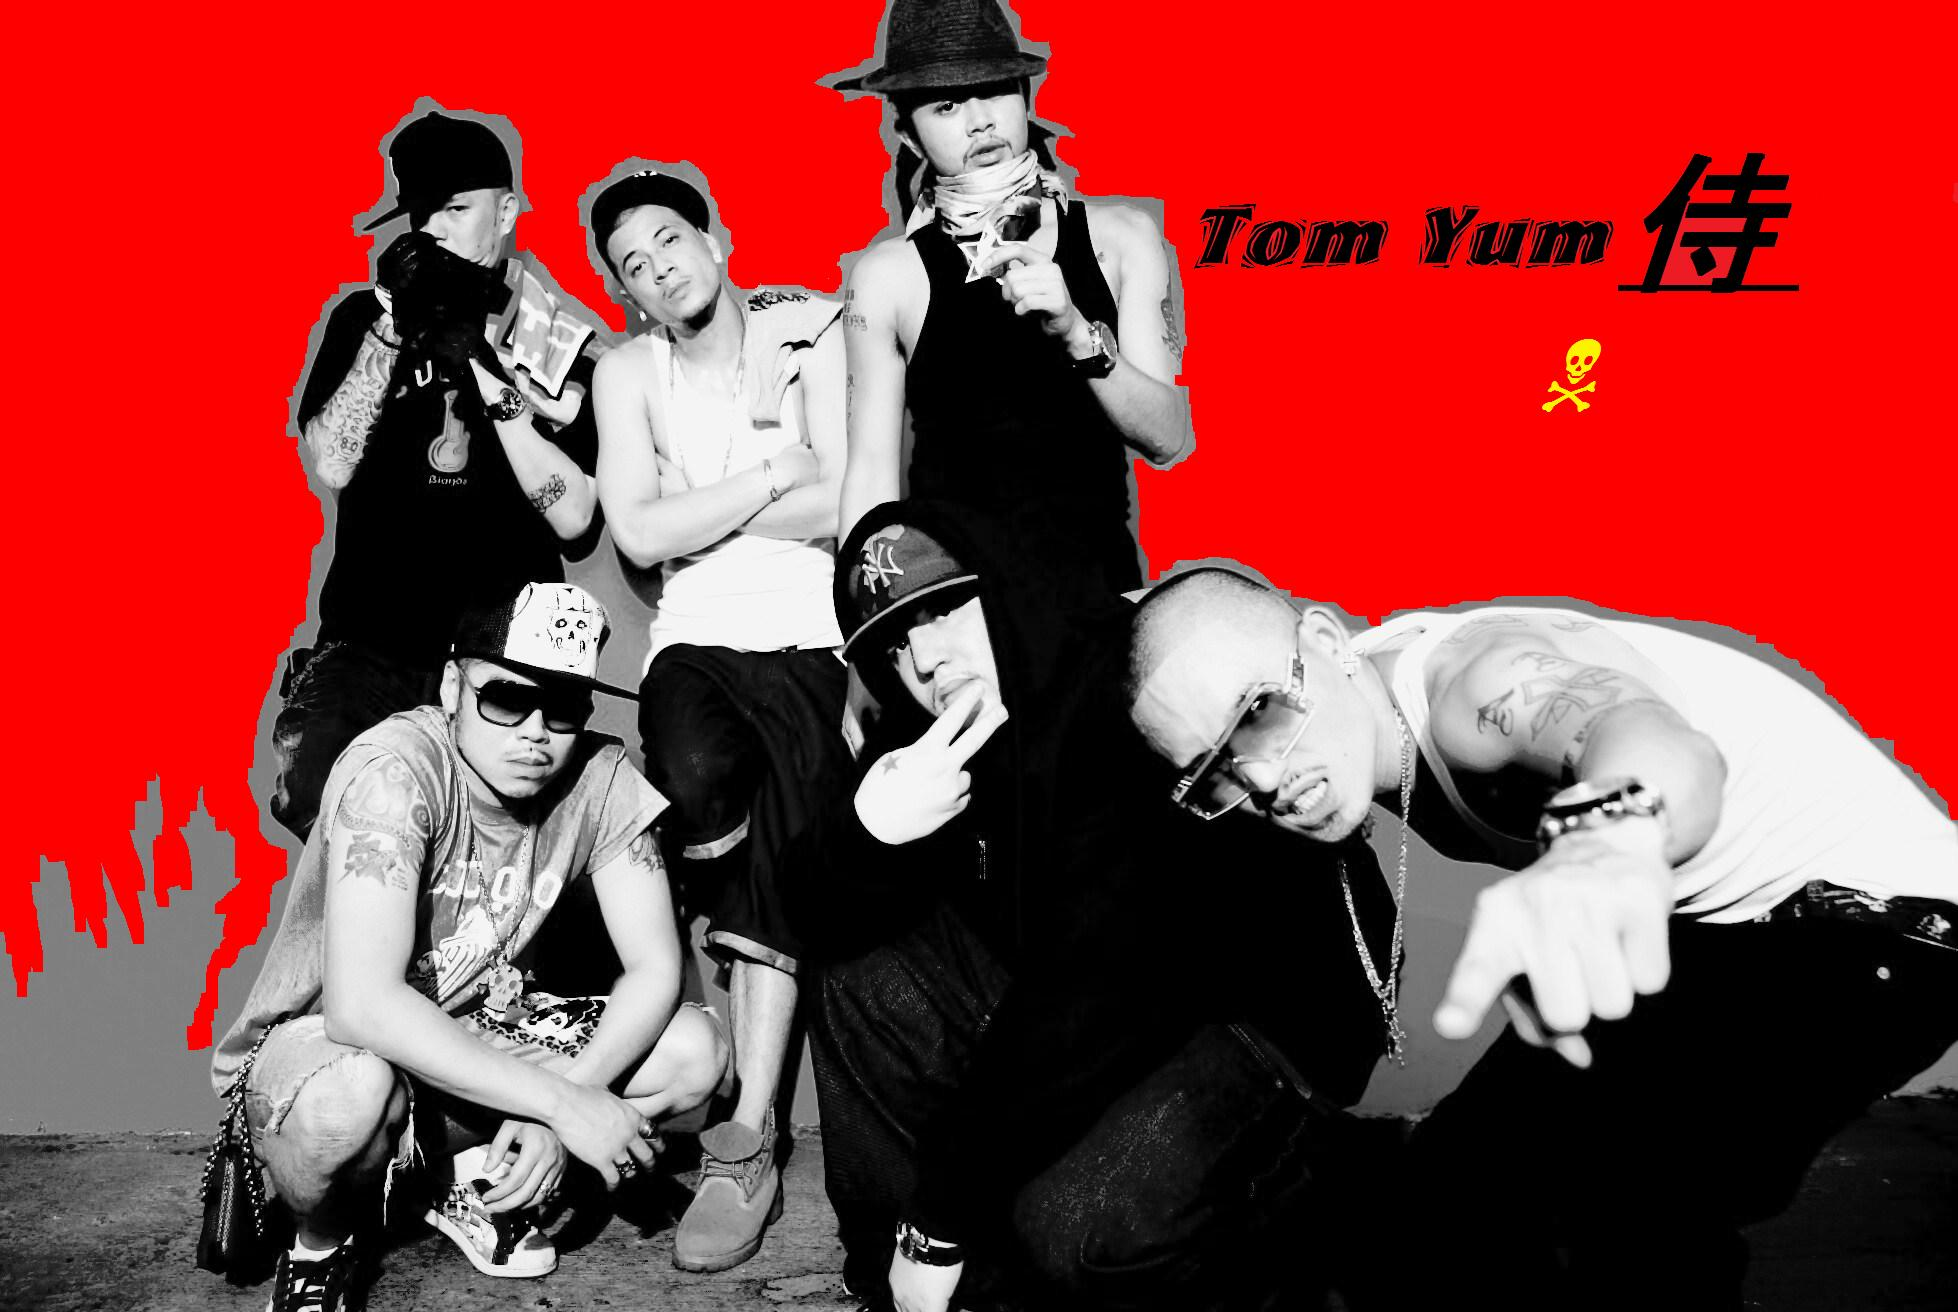 TomYum pic all1 red (2)